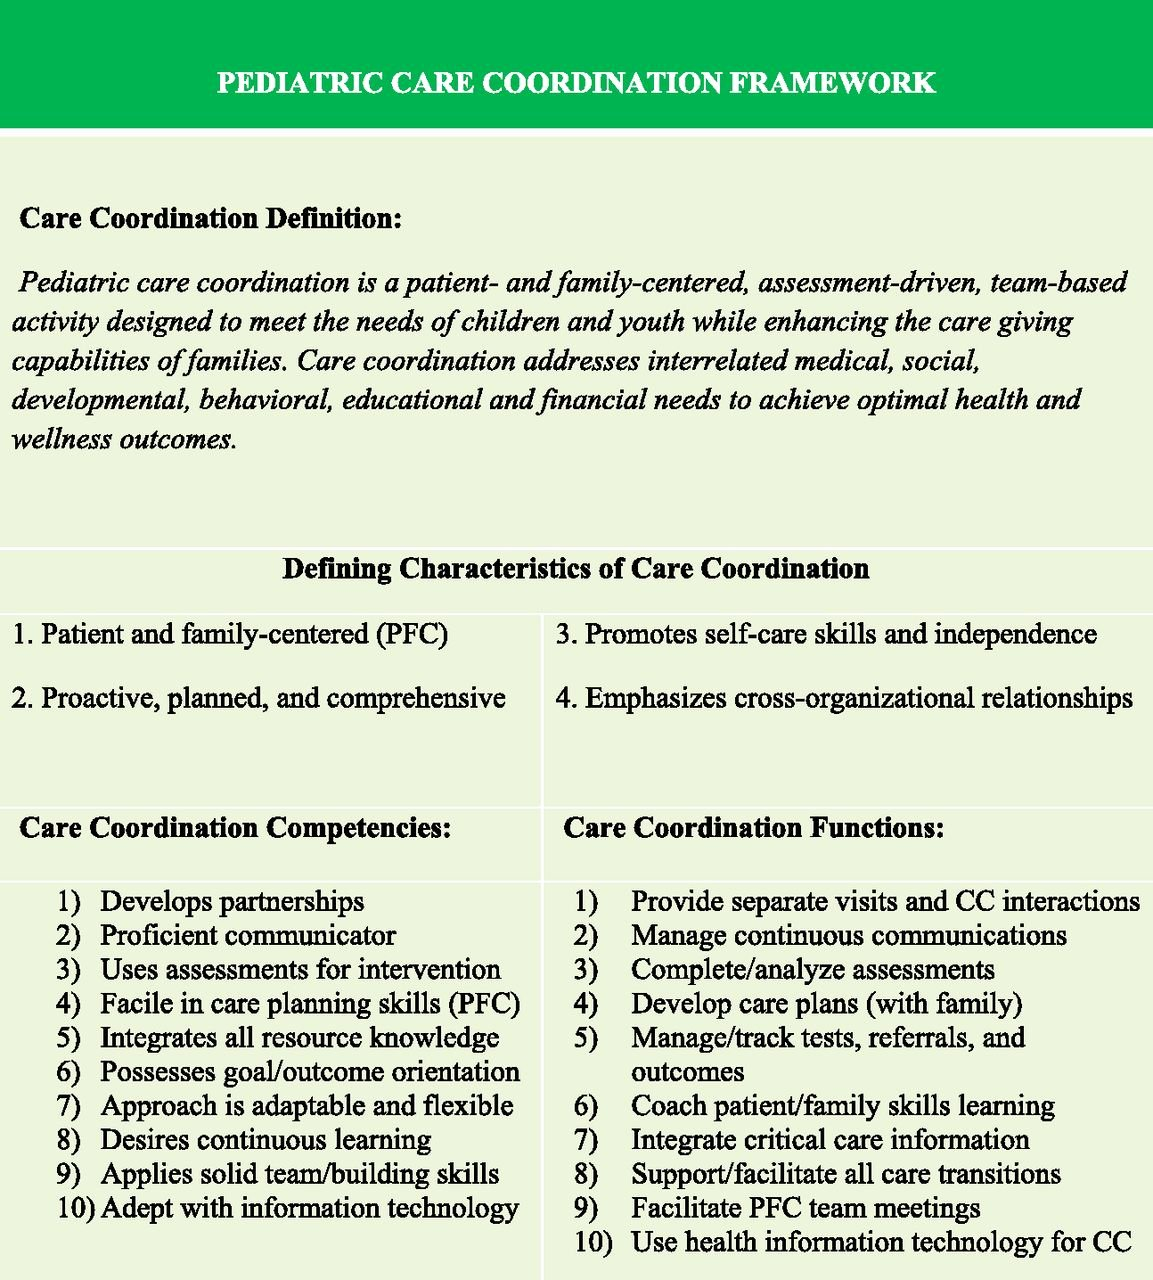 Friedman Family assessment Model Short form Template Luxury Patient and Family Centered Care Coordination A